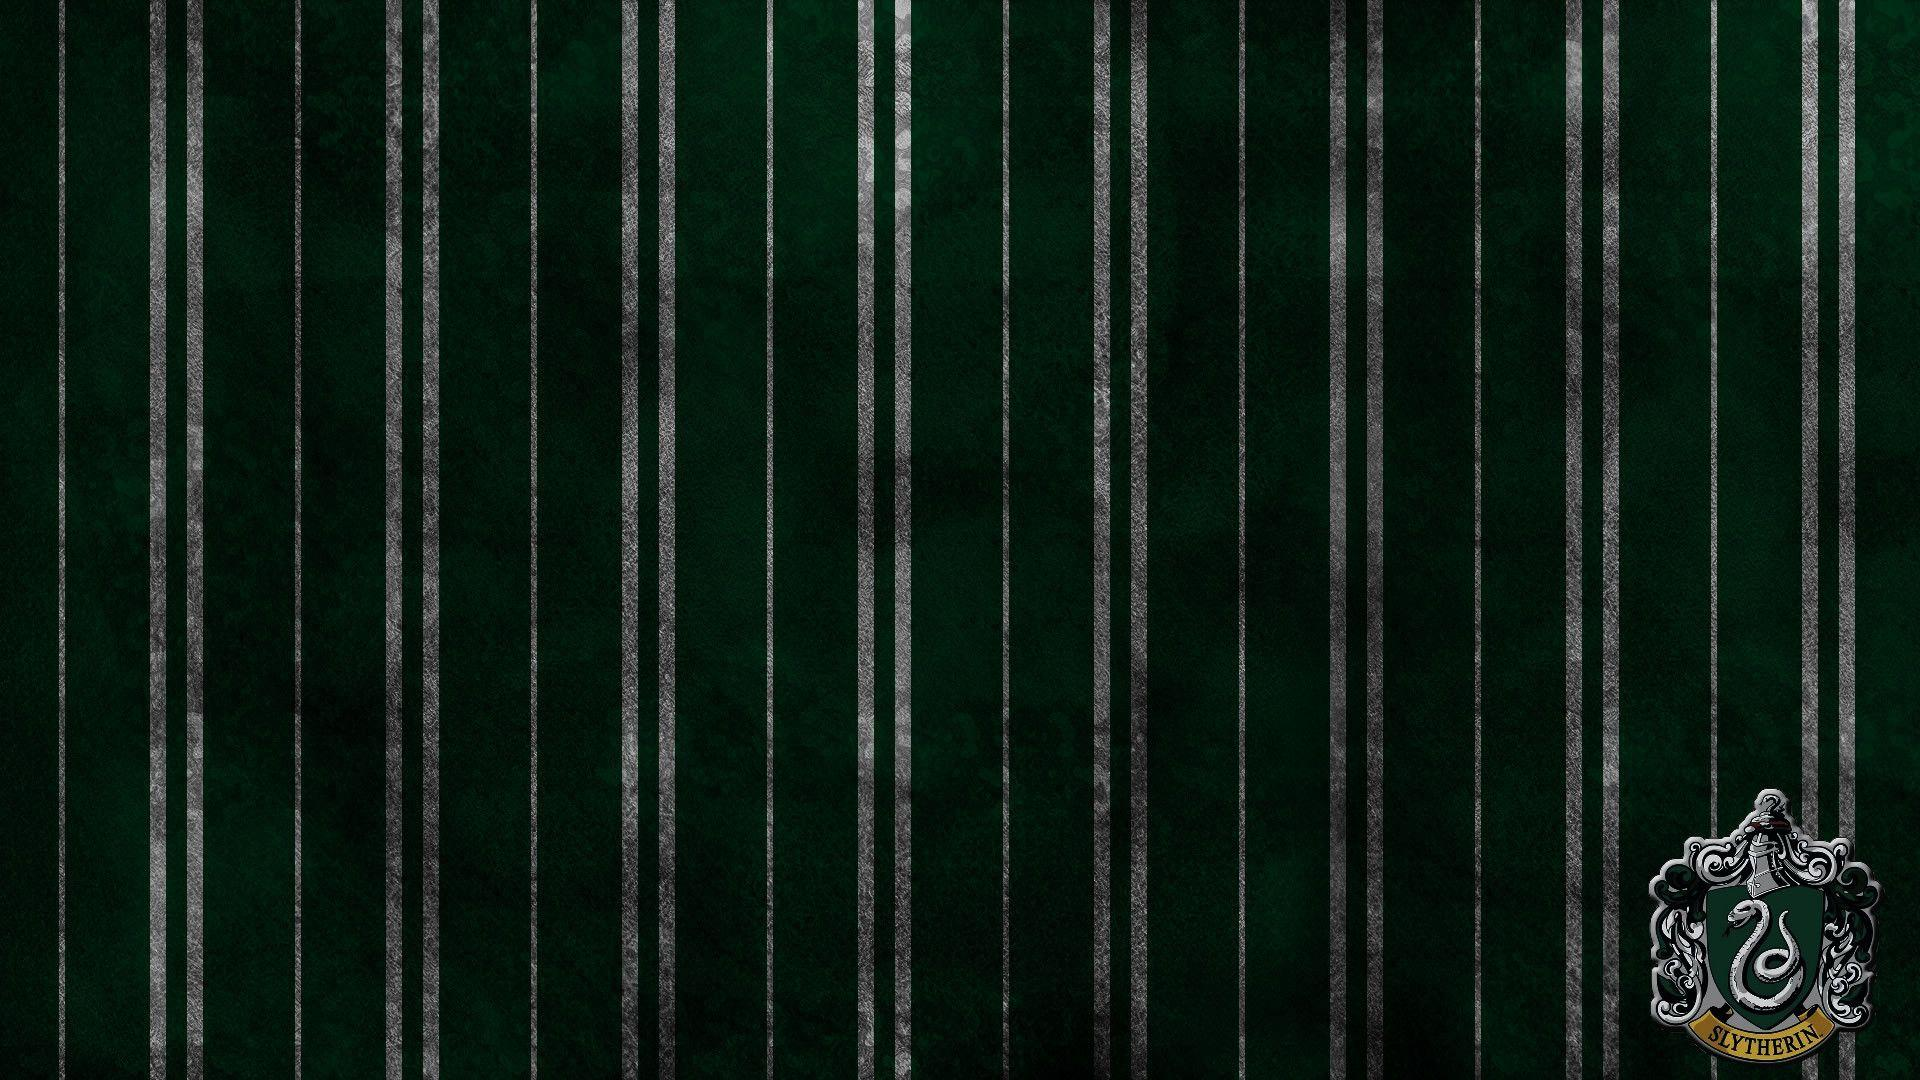 Slytherin Backgrounds Tumblr Wallpaper Cave